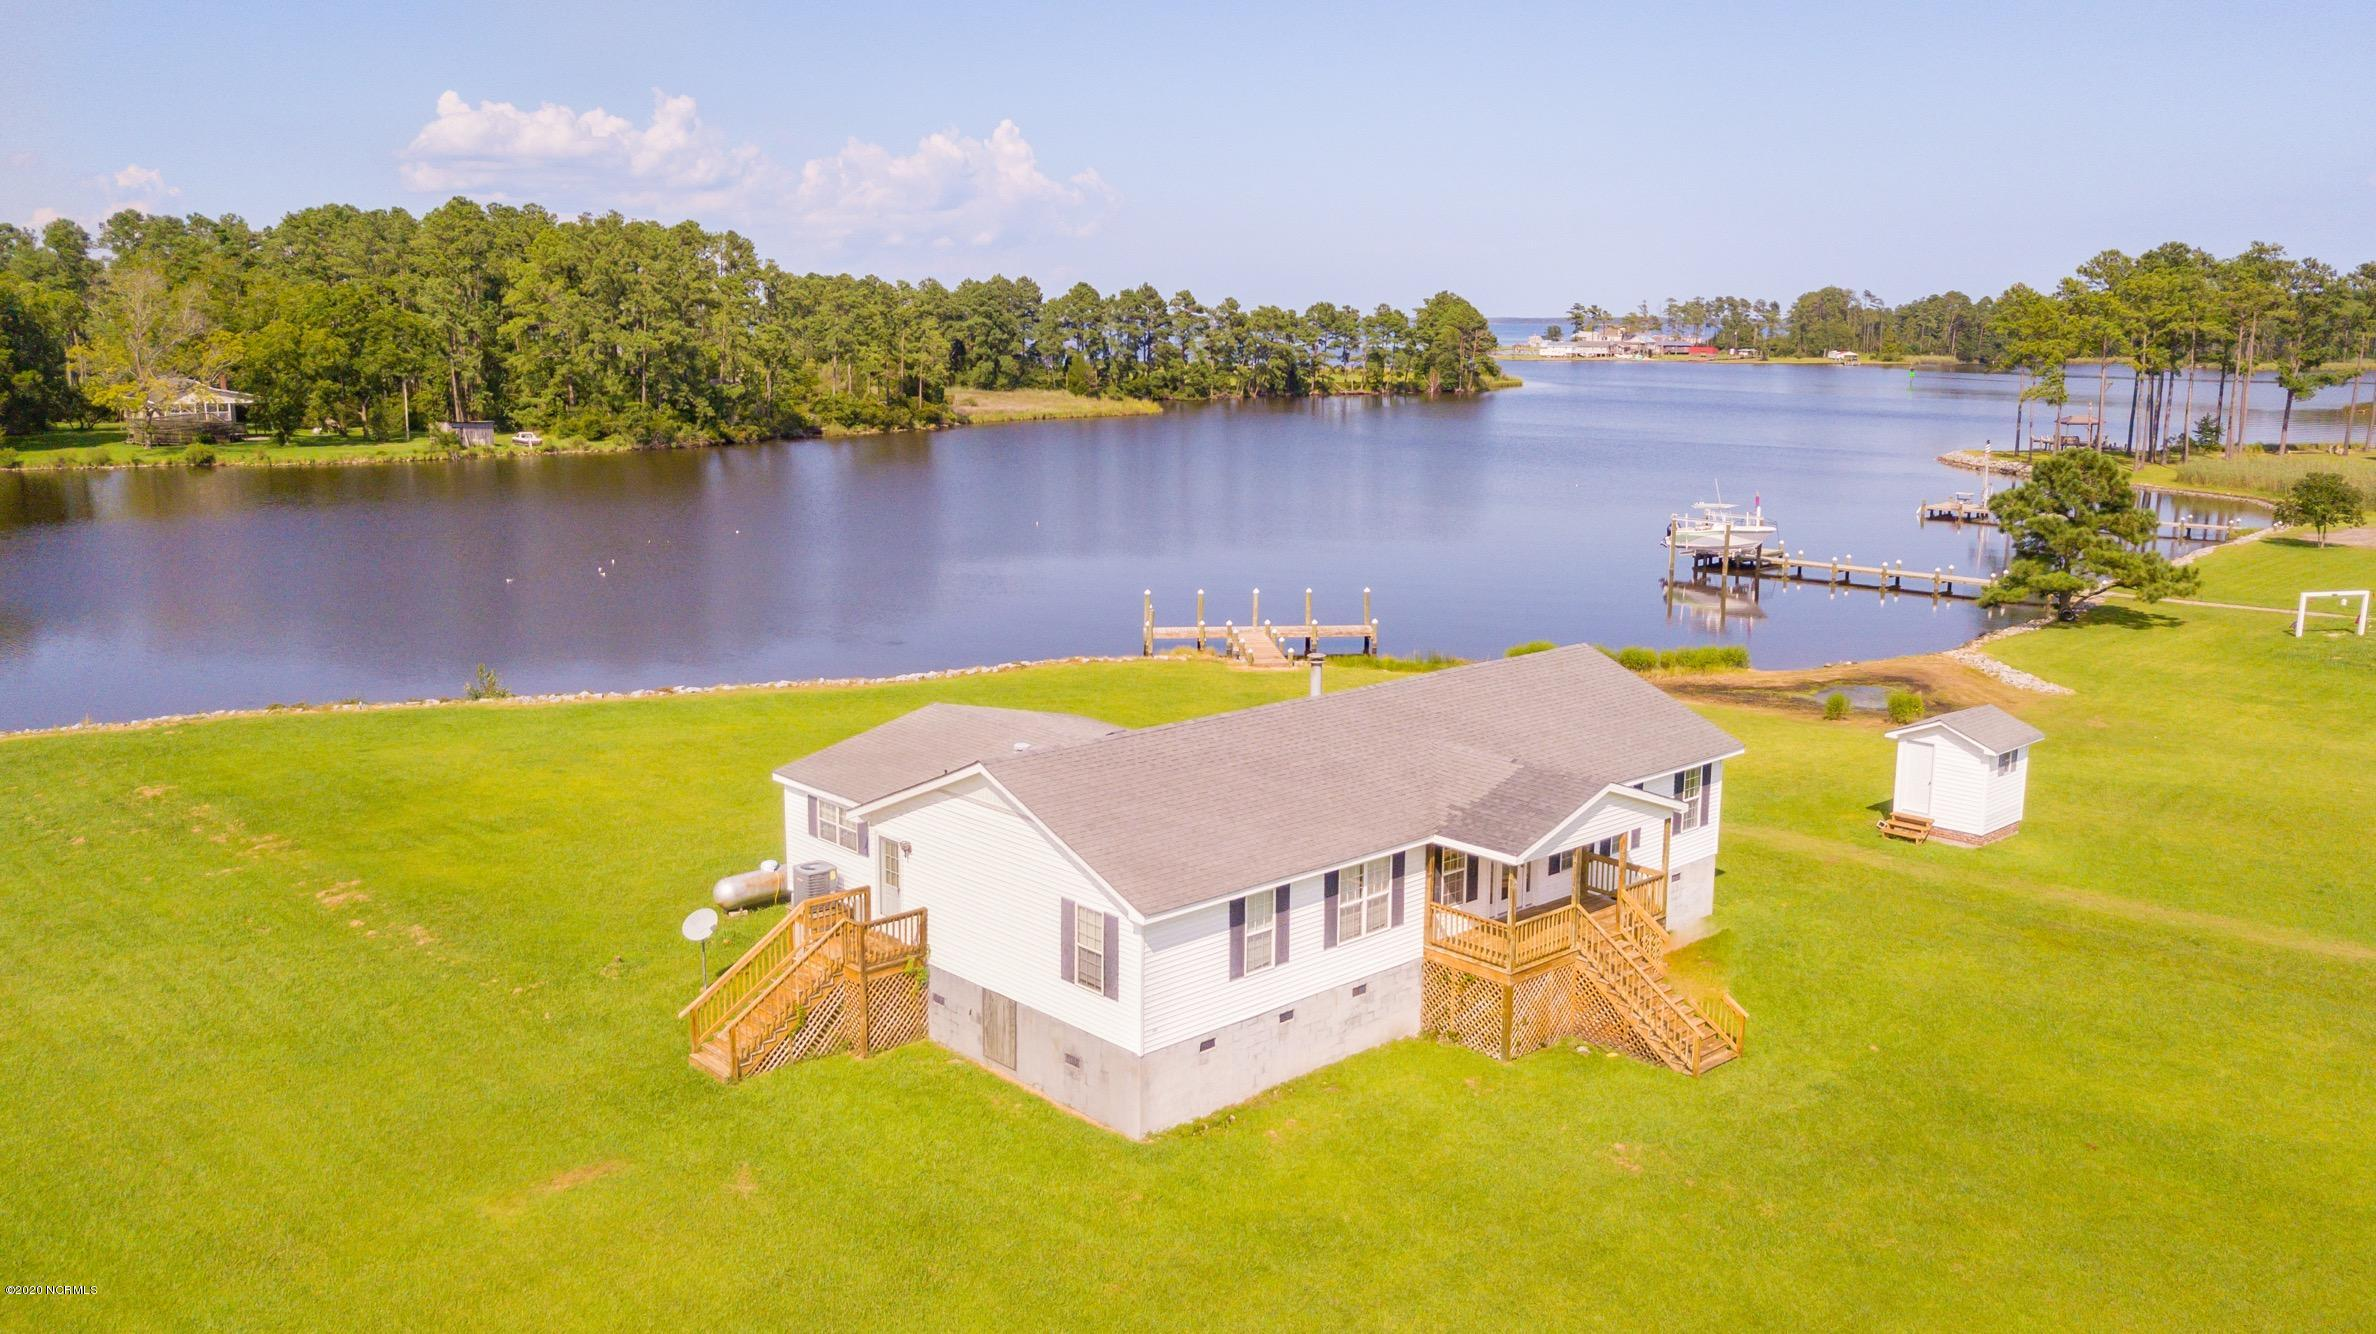 219 Tate Landing Road, Belhaven, North Carolina 27810, 3 Bedrooms Bedrooms, 8 Rooms Rooms,2 BathroomsBathrooms,Manufactured home,For sale,Tate Landing,100232031